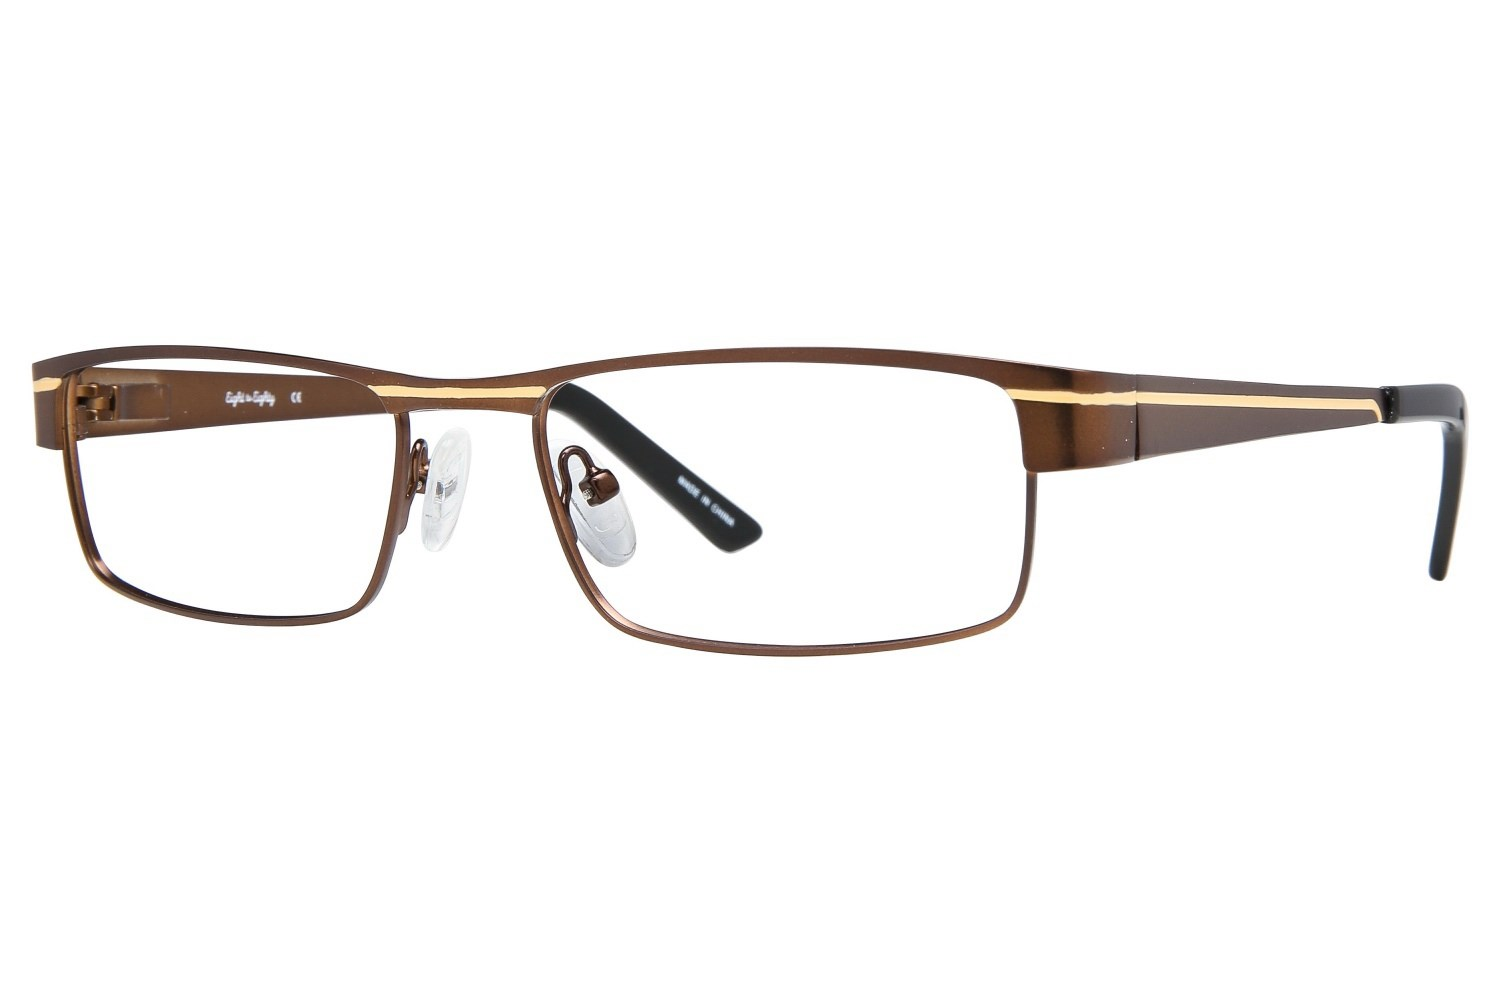 62dd5cee344  39.95 More Details · Eight To Eighty Eyewear Jimmy Eyeglasses Frames